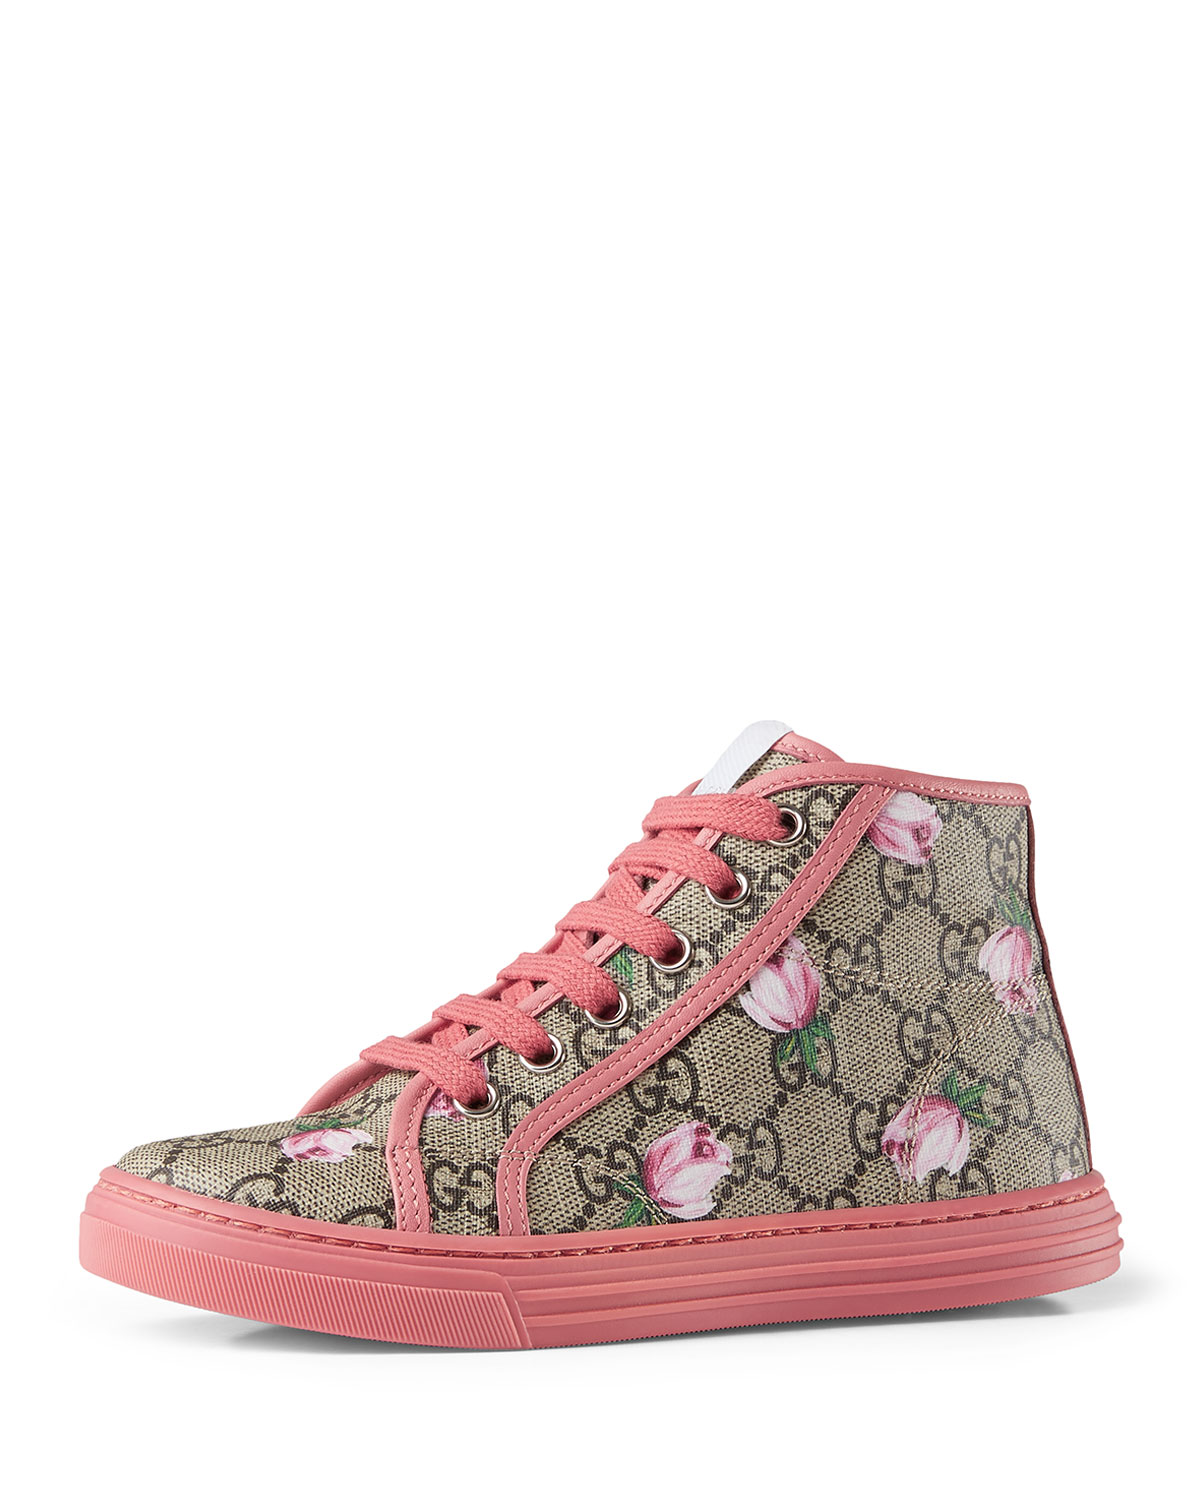 9df6209f1bf Gucci California GG Supreme Printed High-Top Sneaker